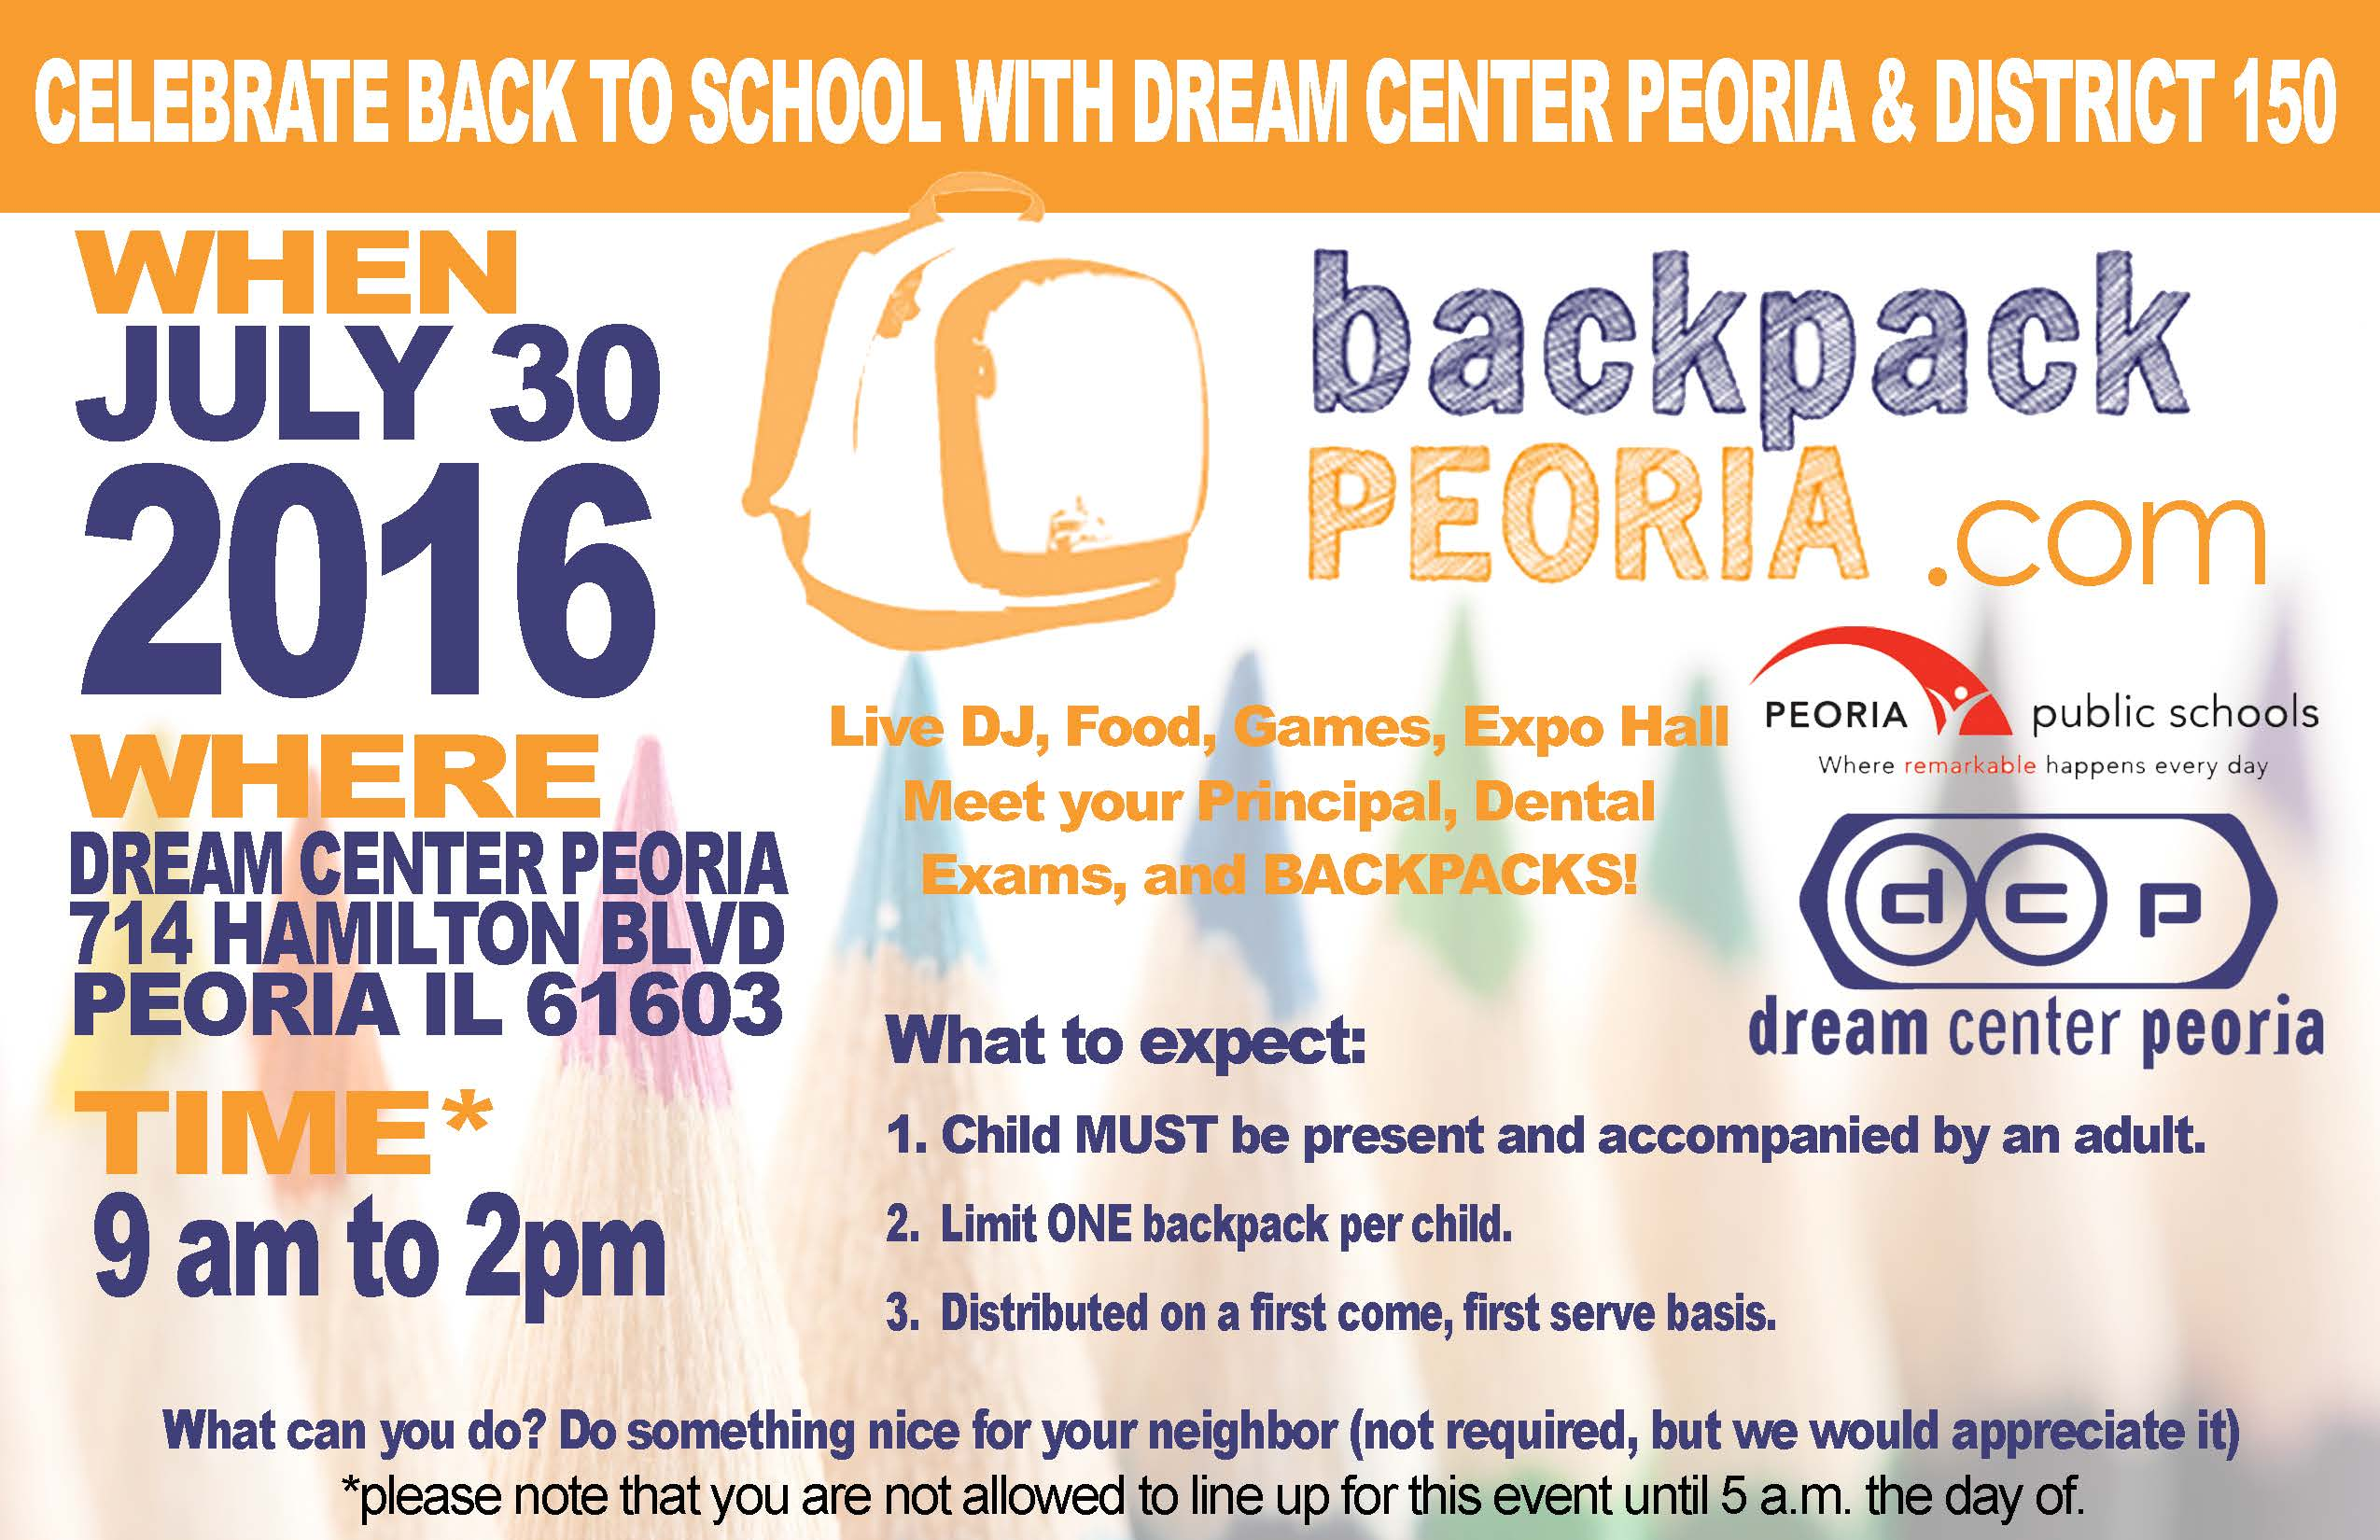 Backpack Peoria 2016